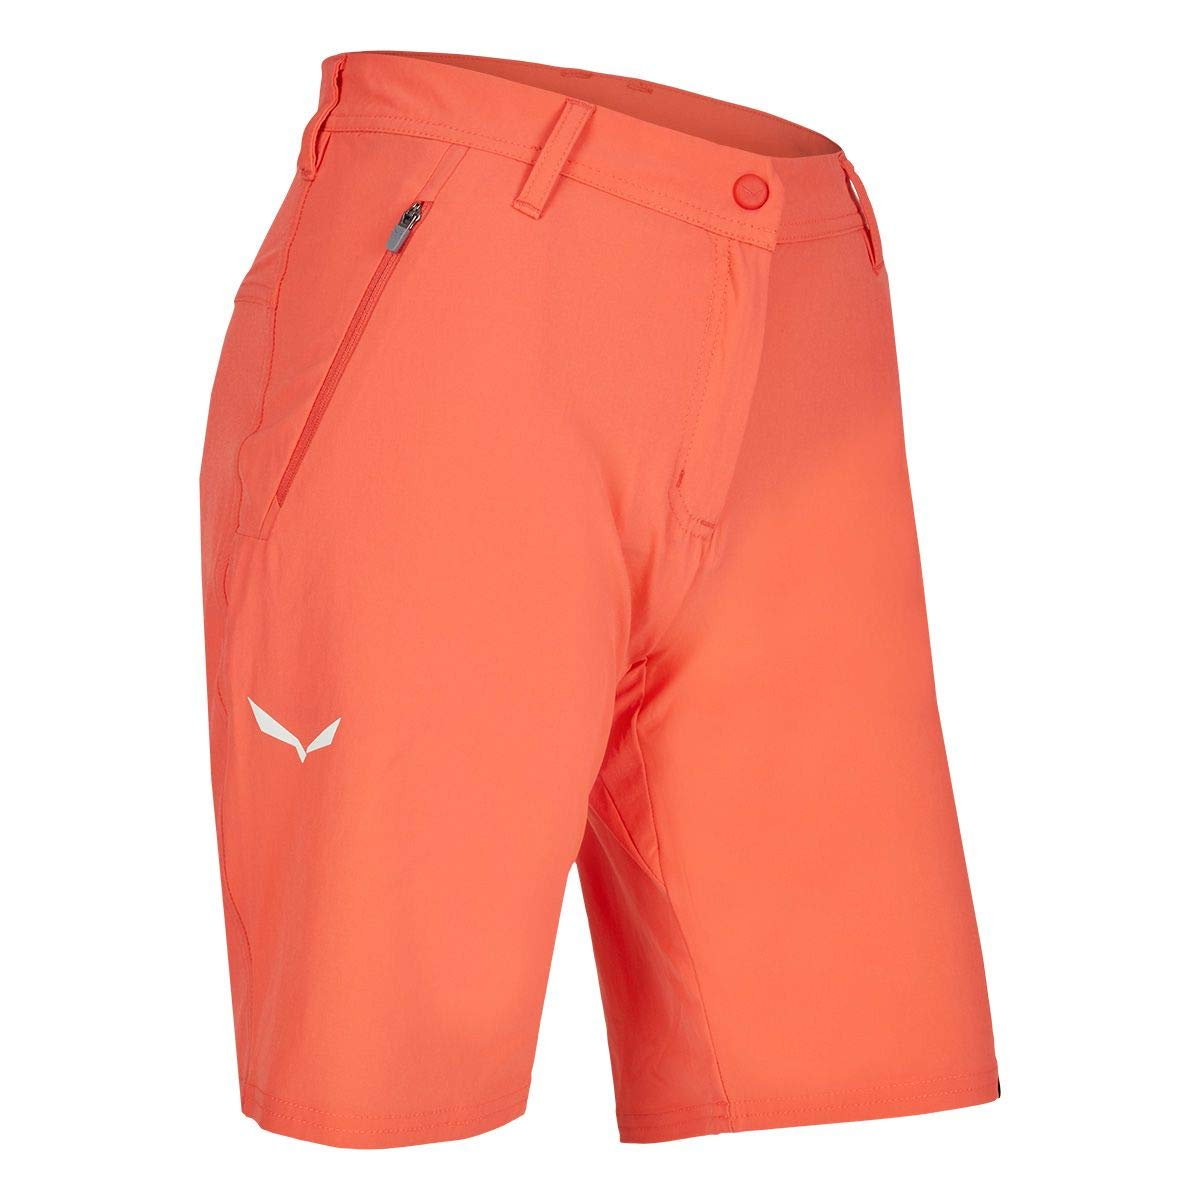 SALEWA Shorts *FORTEZZA DST W SHORTS 1840 hot coral